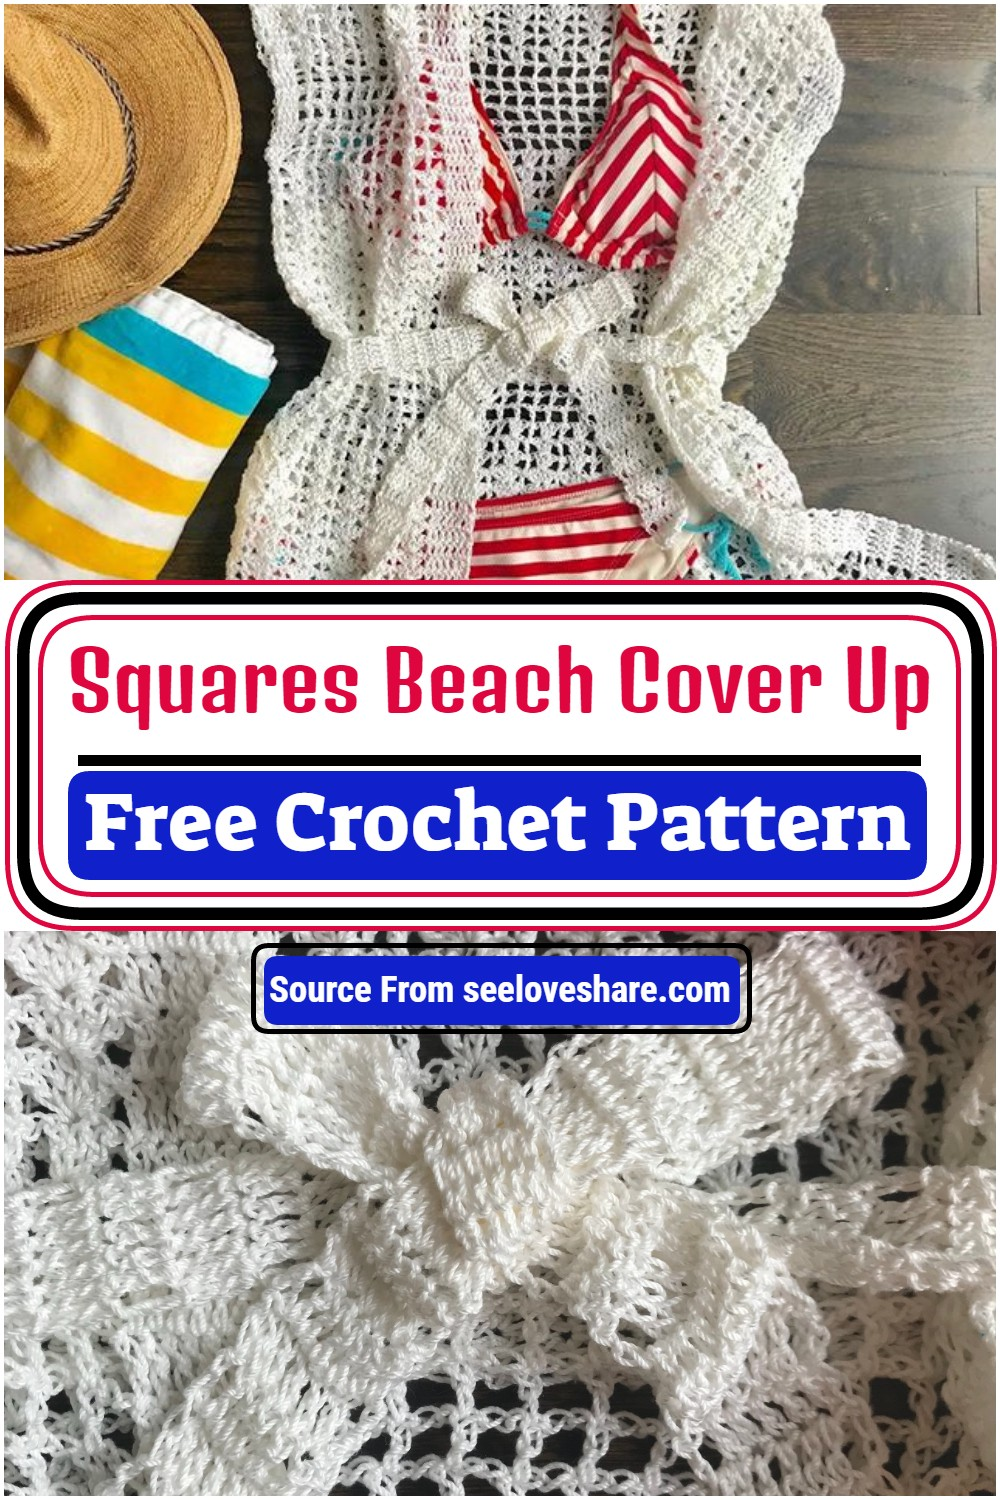 Crochet Squares Beach Cover Up Pattern